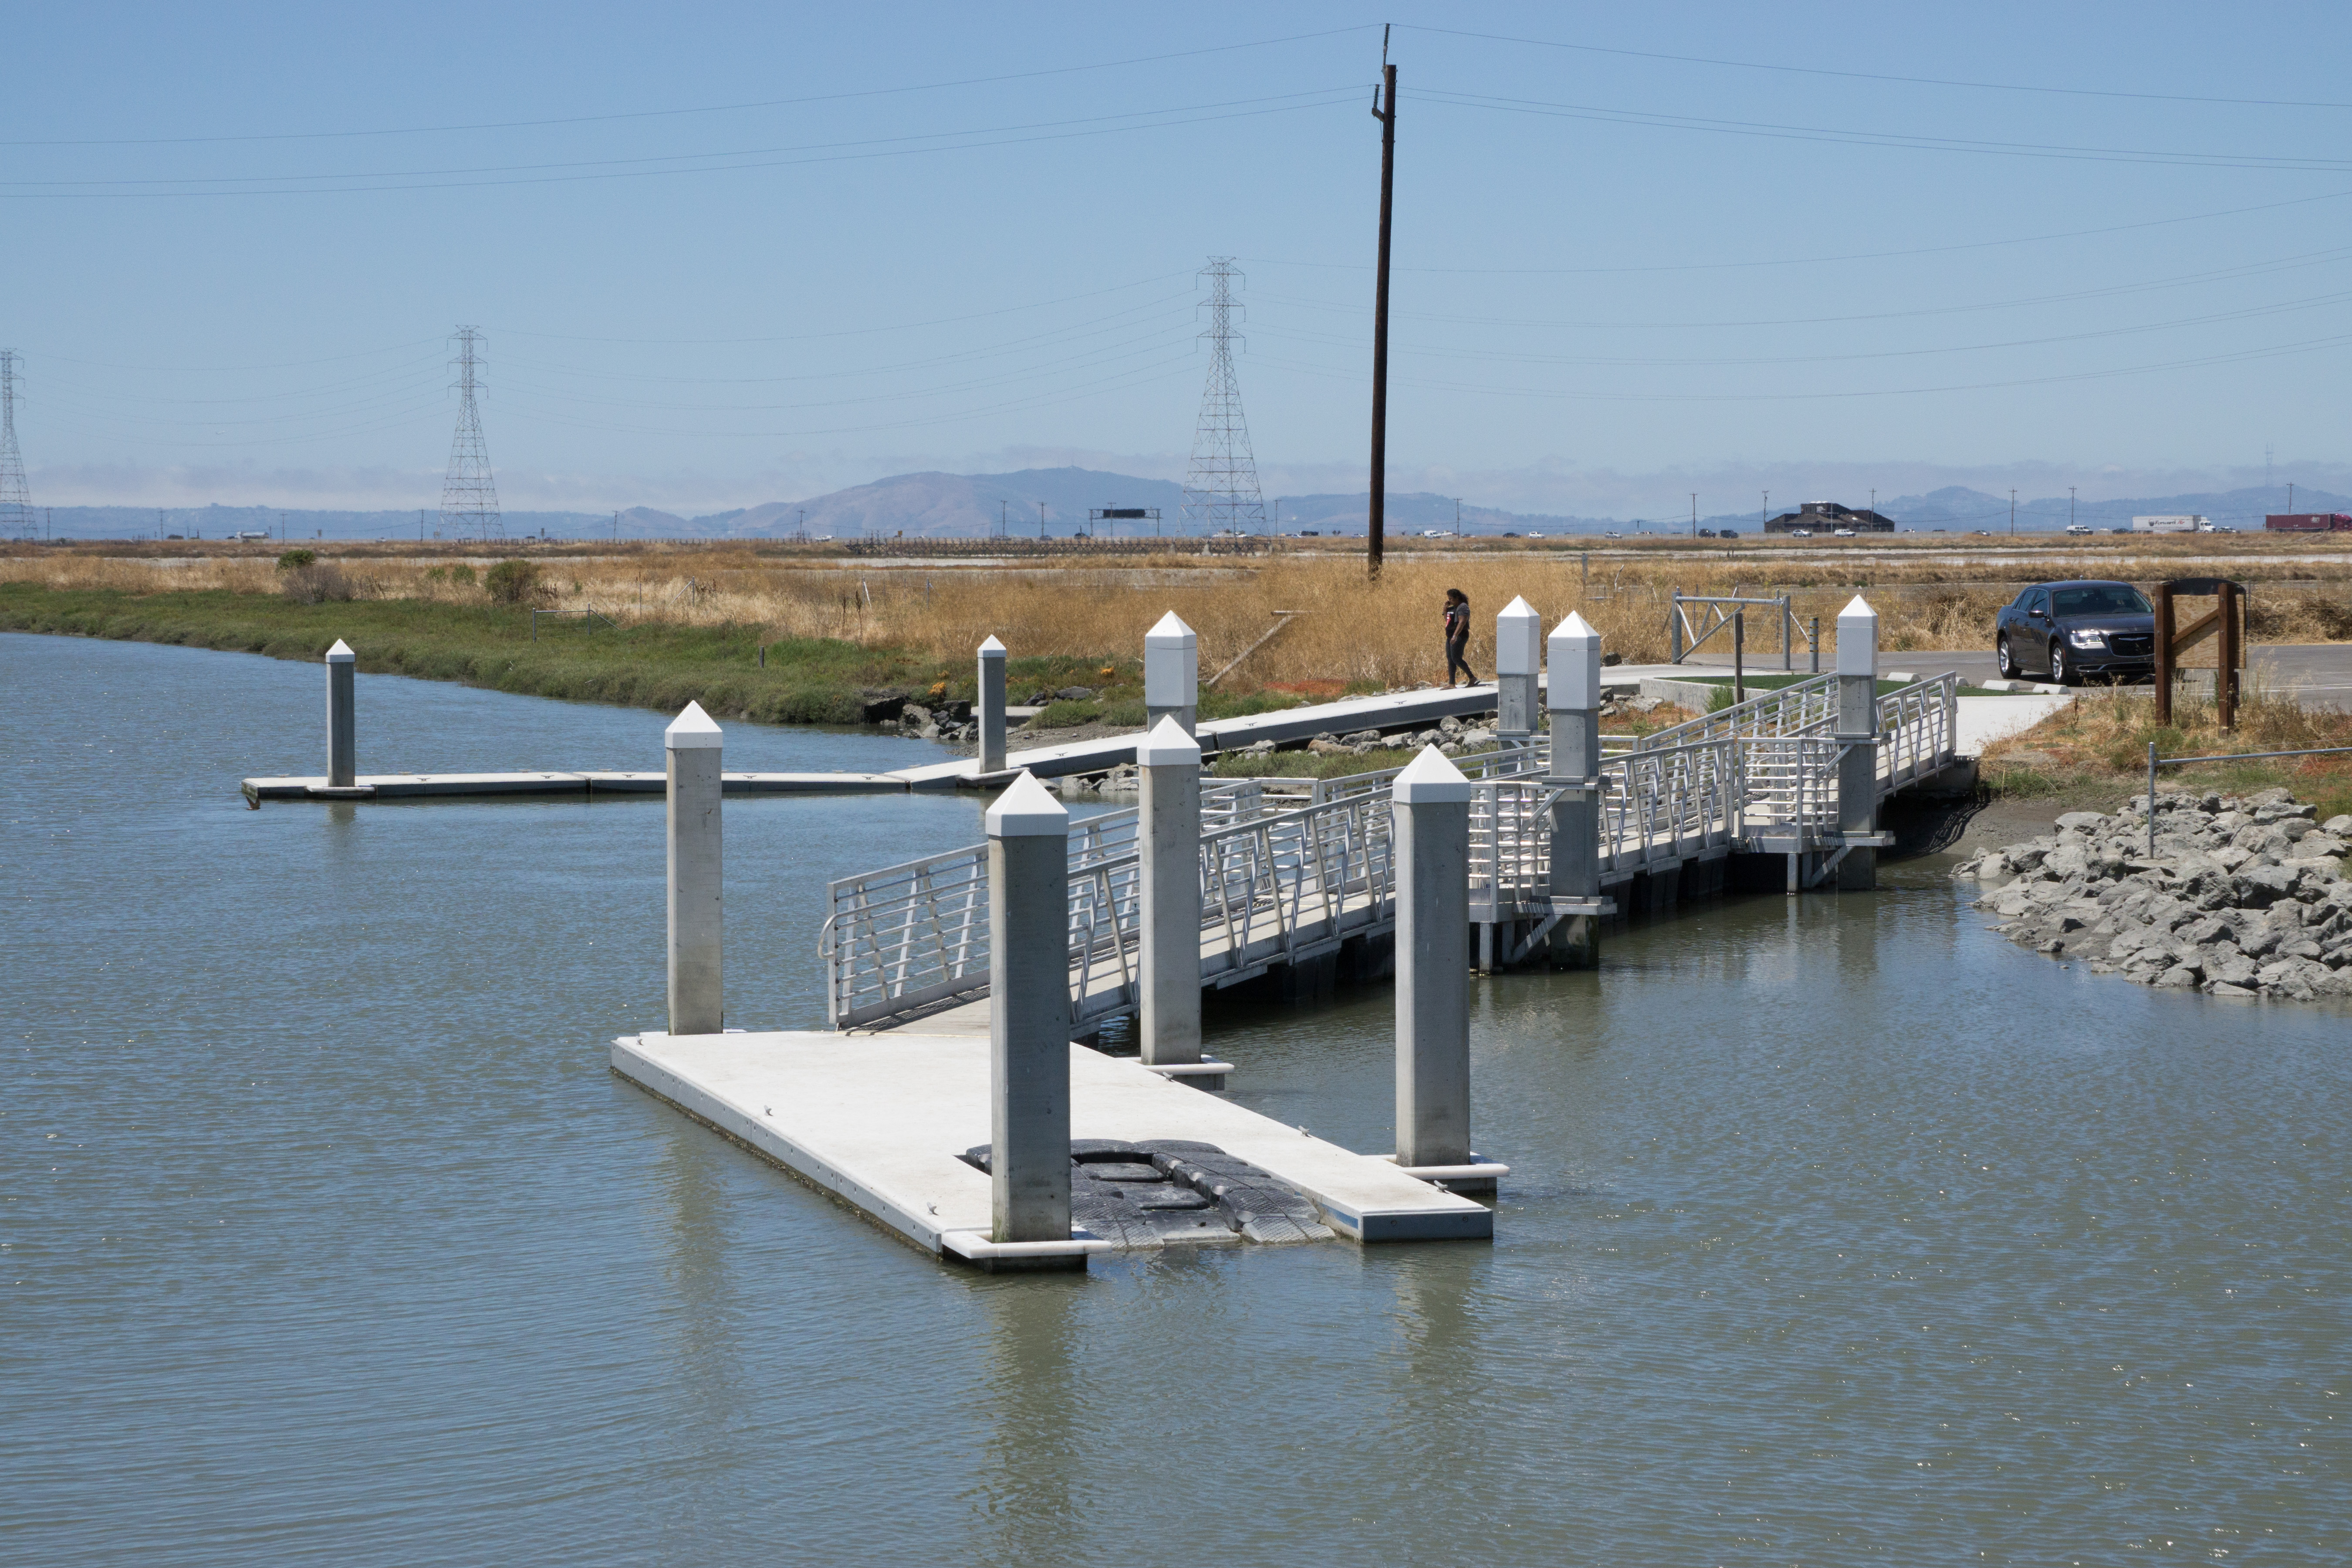 Floating dock with rubber kayak launch